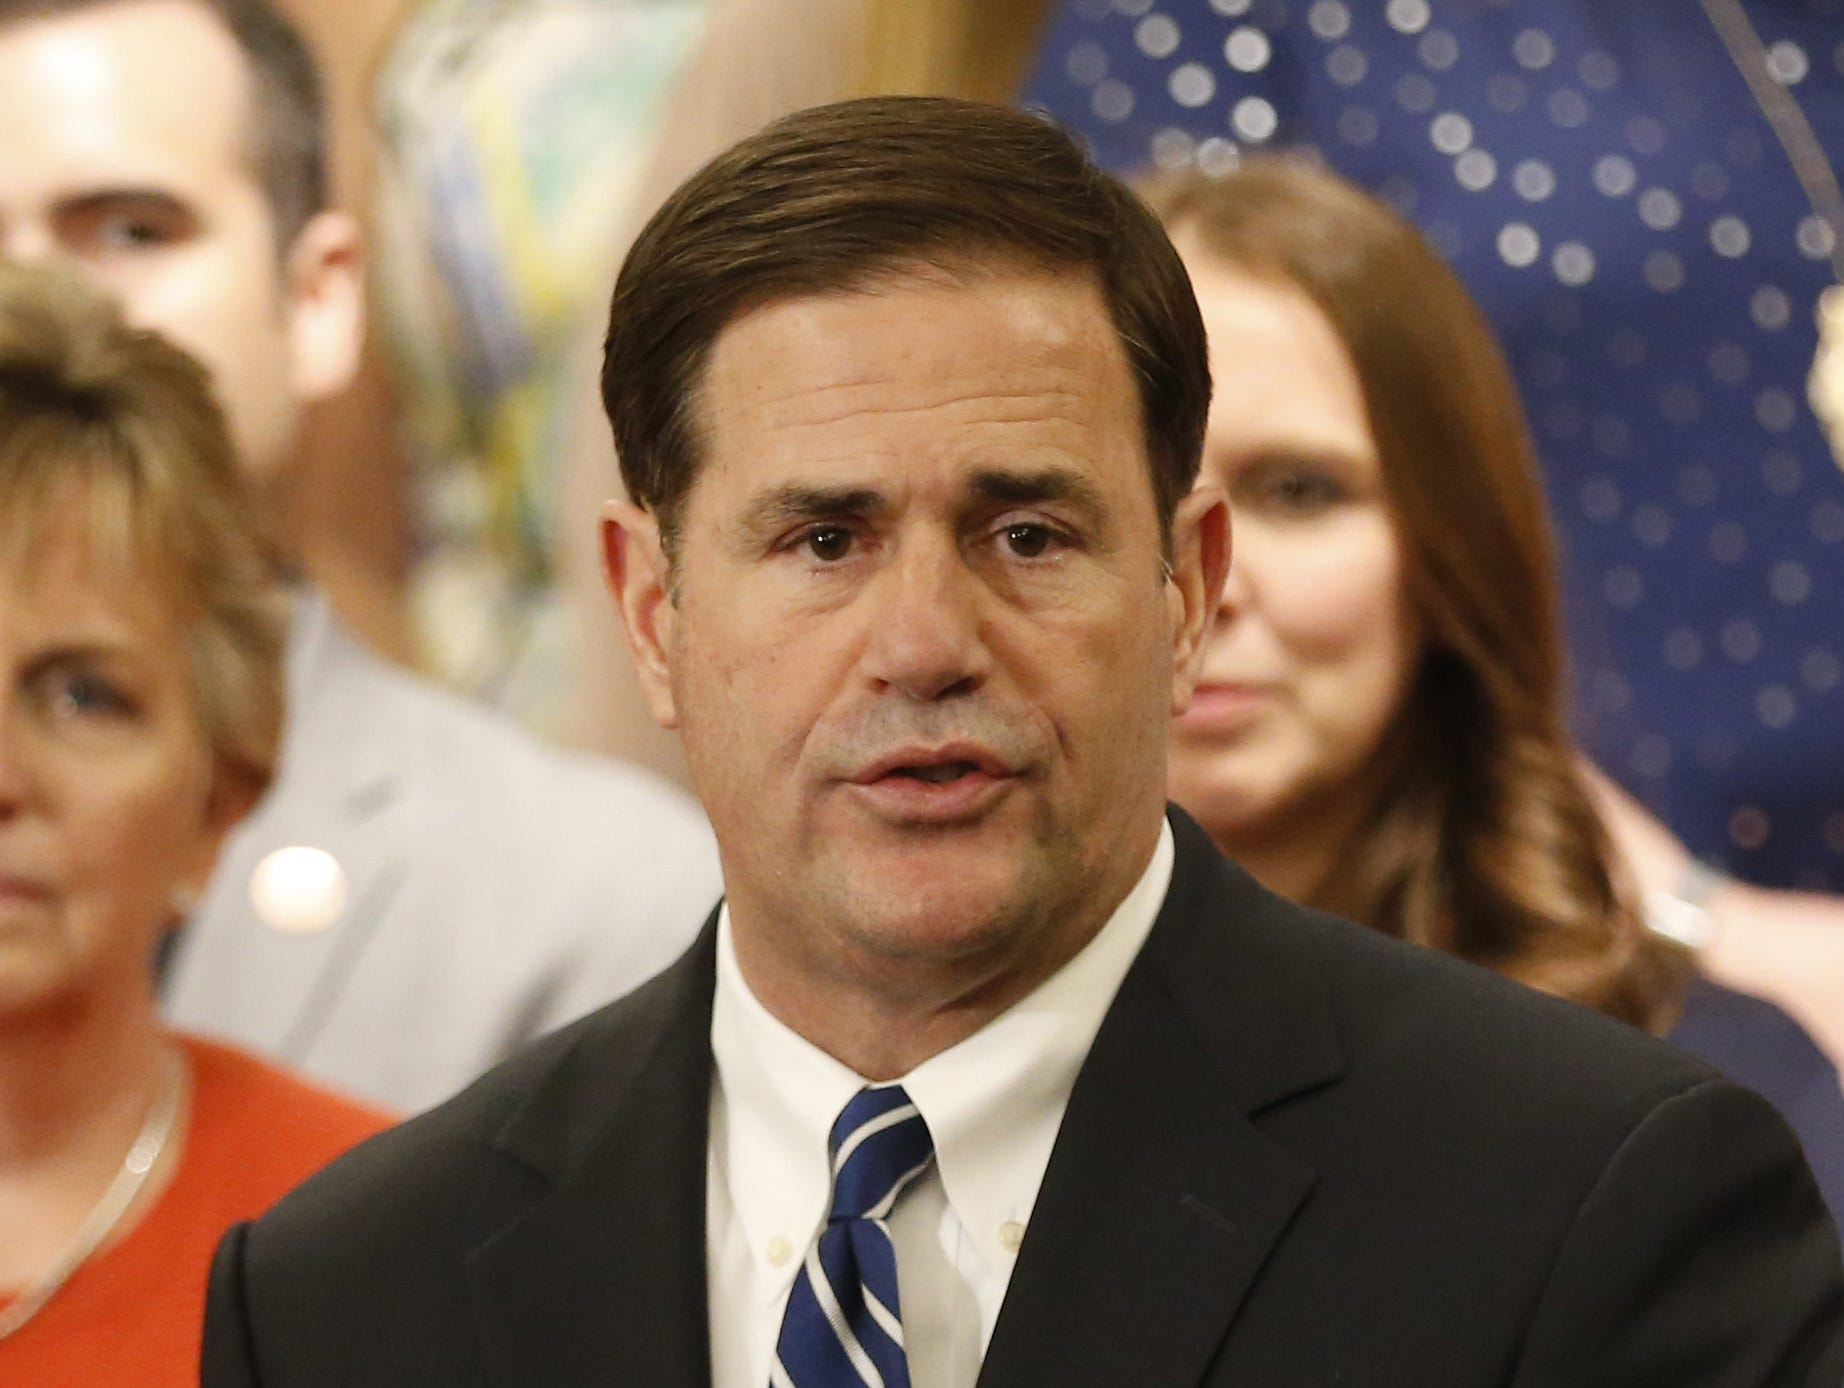 Gov. Doug Ducey announces his plan to raise teachers pay by 20 percent over the next two years at the State Capitol in Phoenix, Ariz. on April 12, 2018.